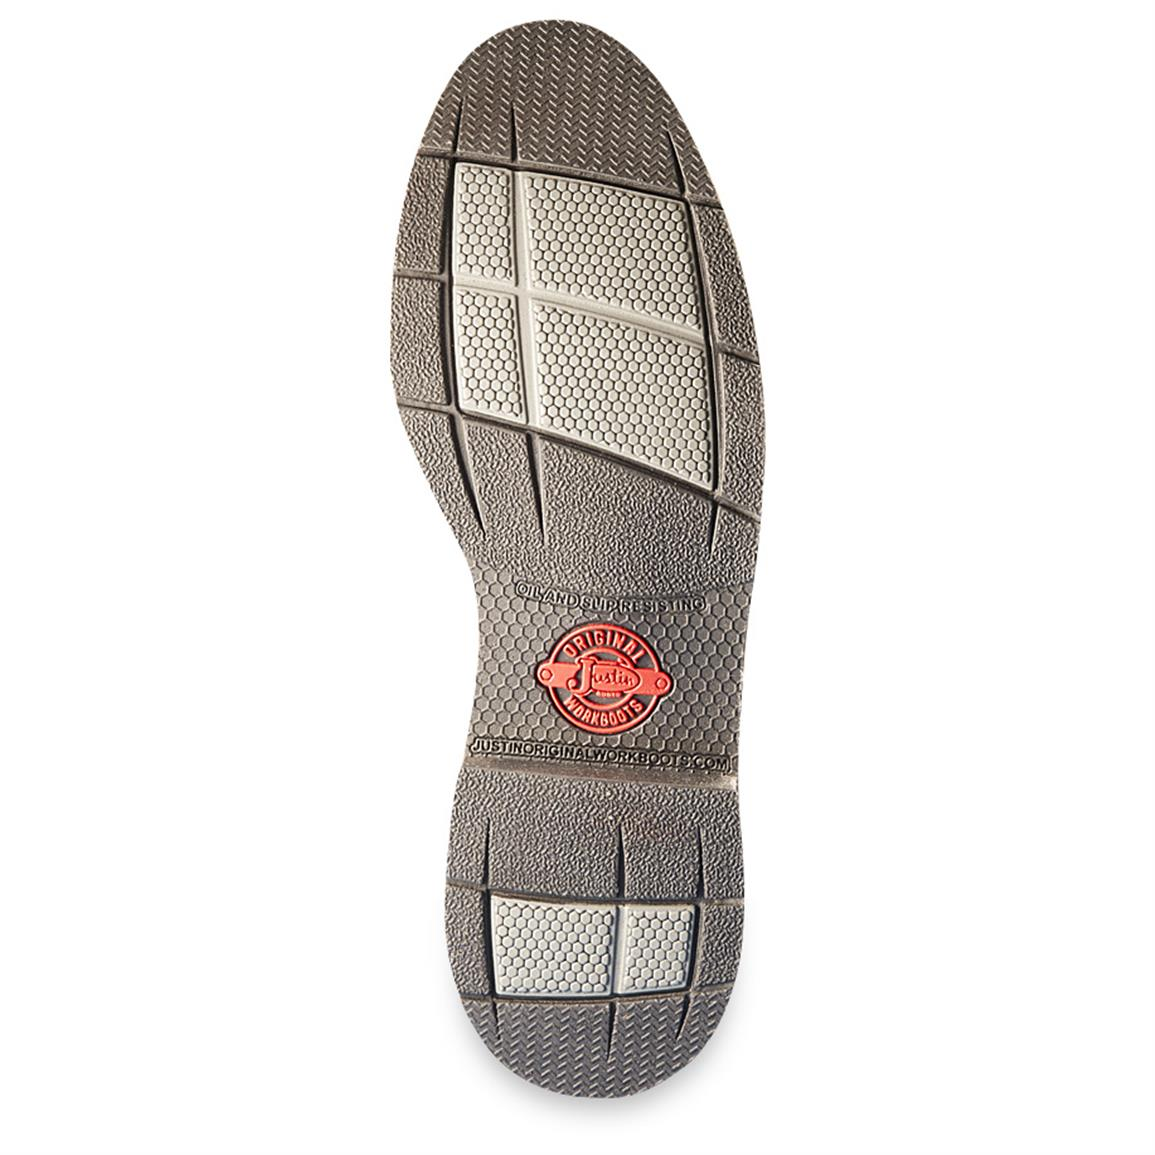 Oil and slip-resistant outsole